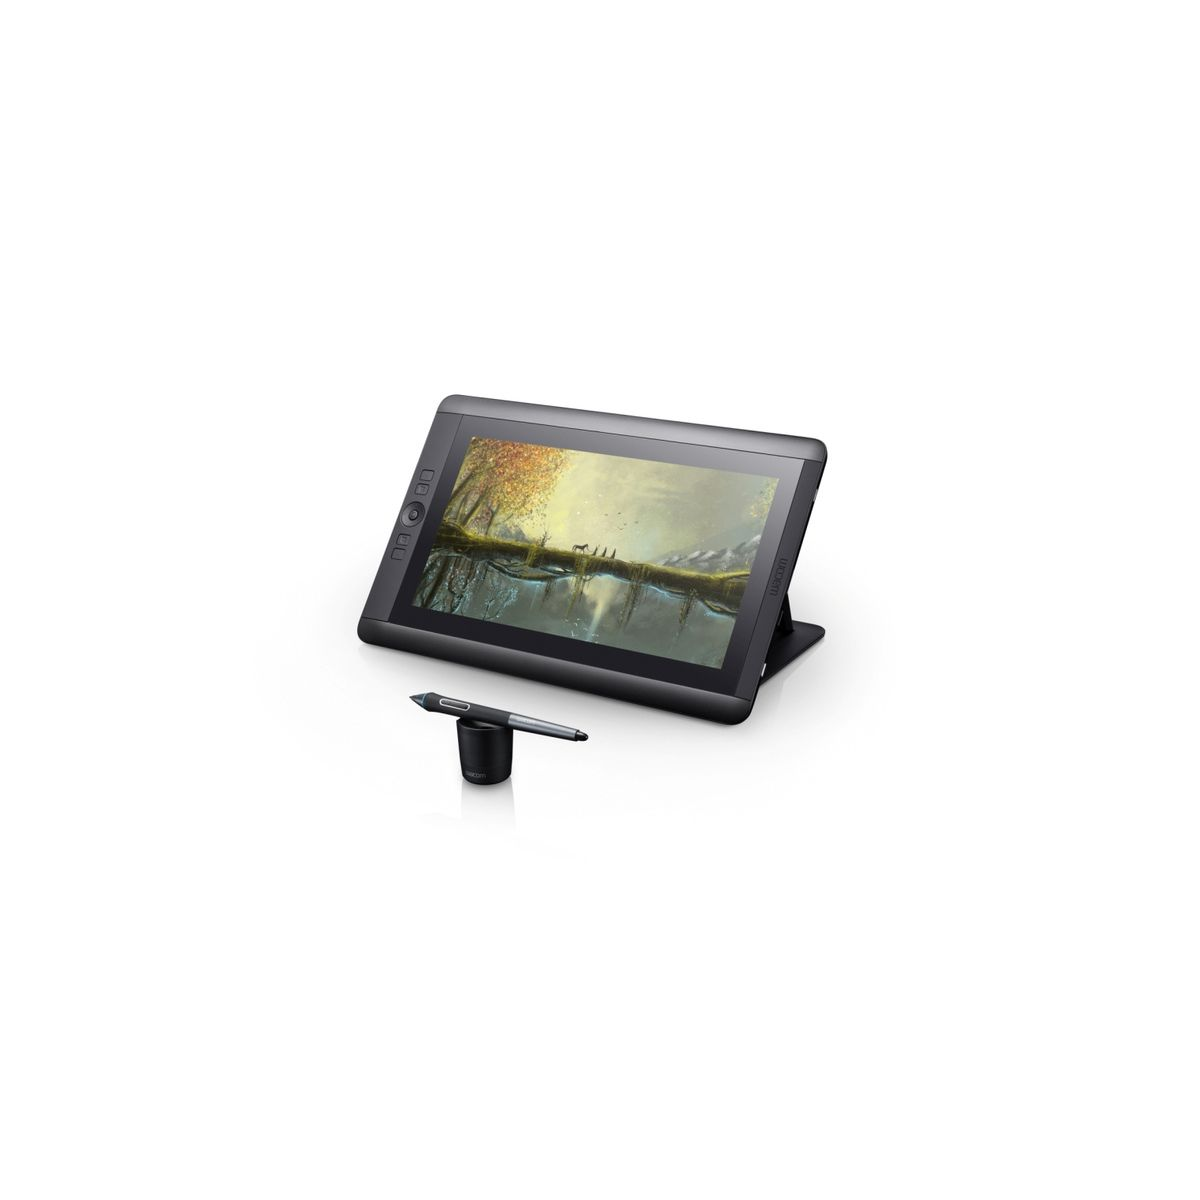 Tablette graph wacom cintiq 13 hd pen & – 20 € de remise : code cash20